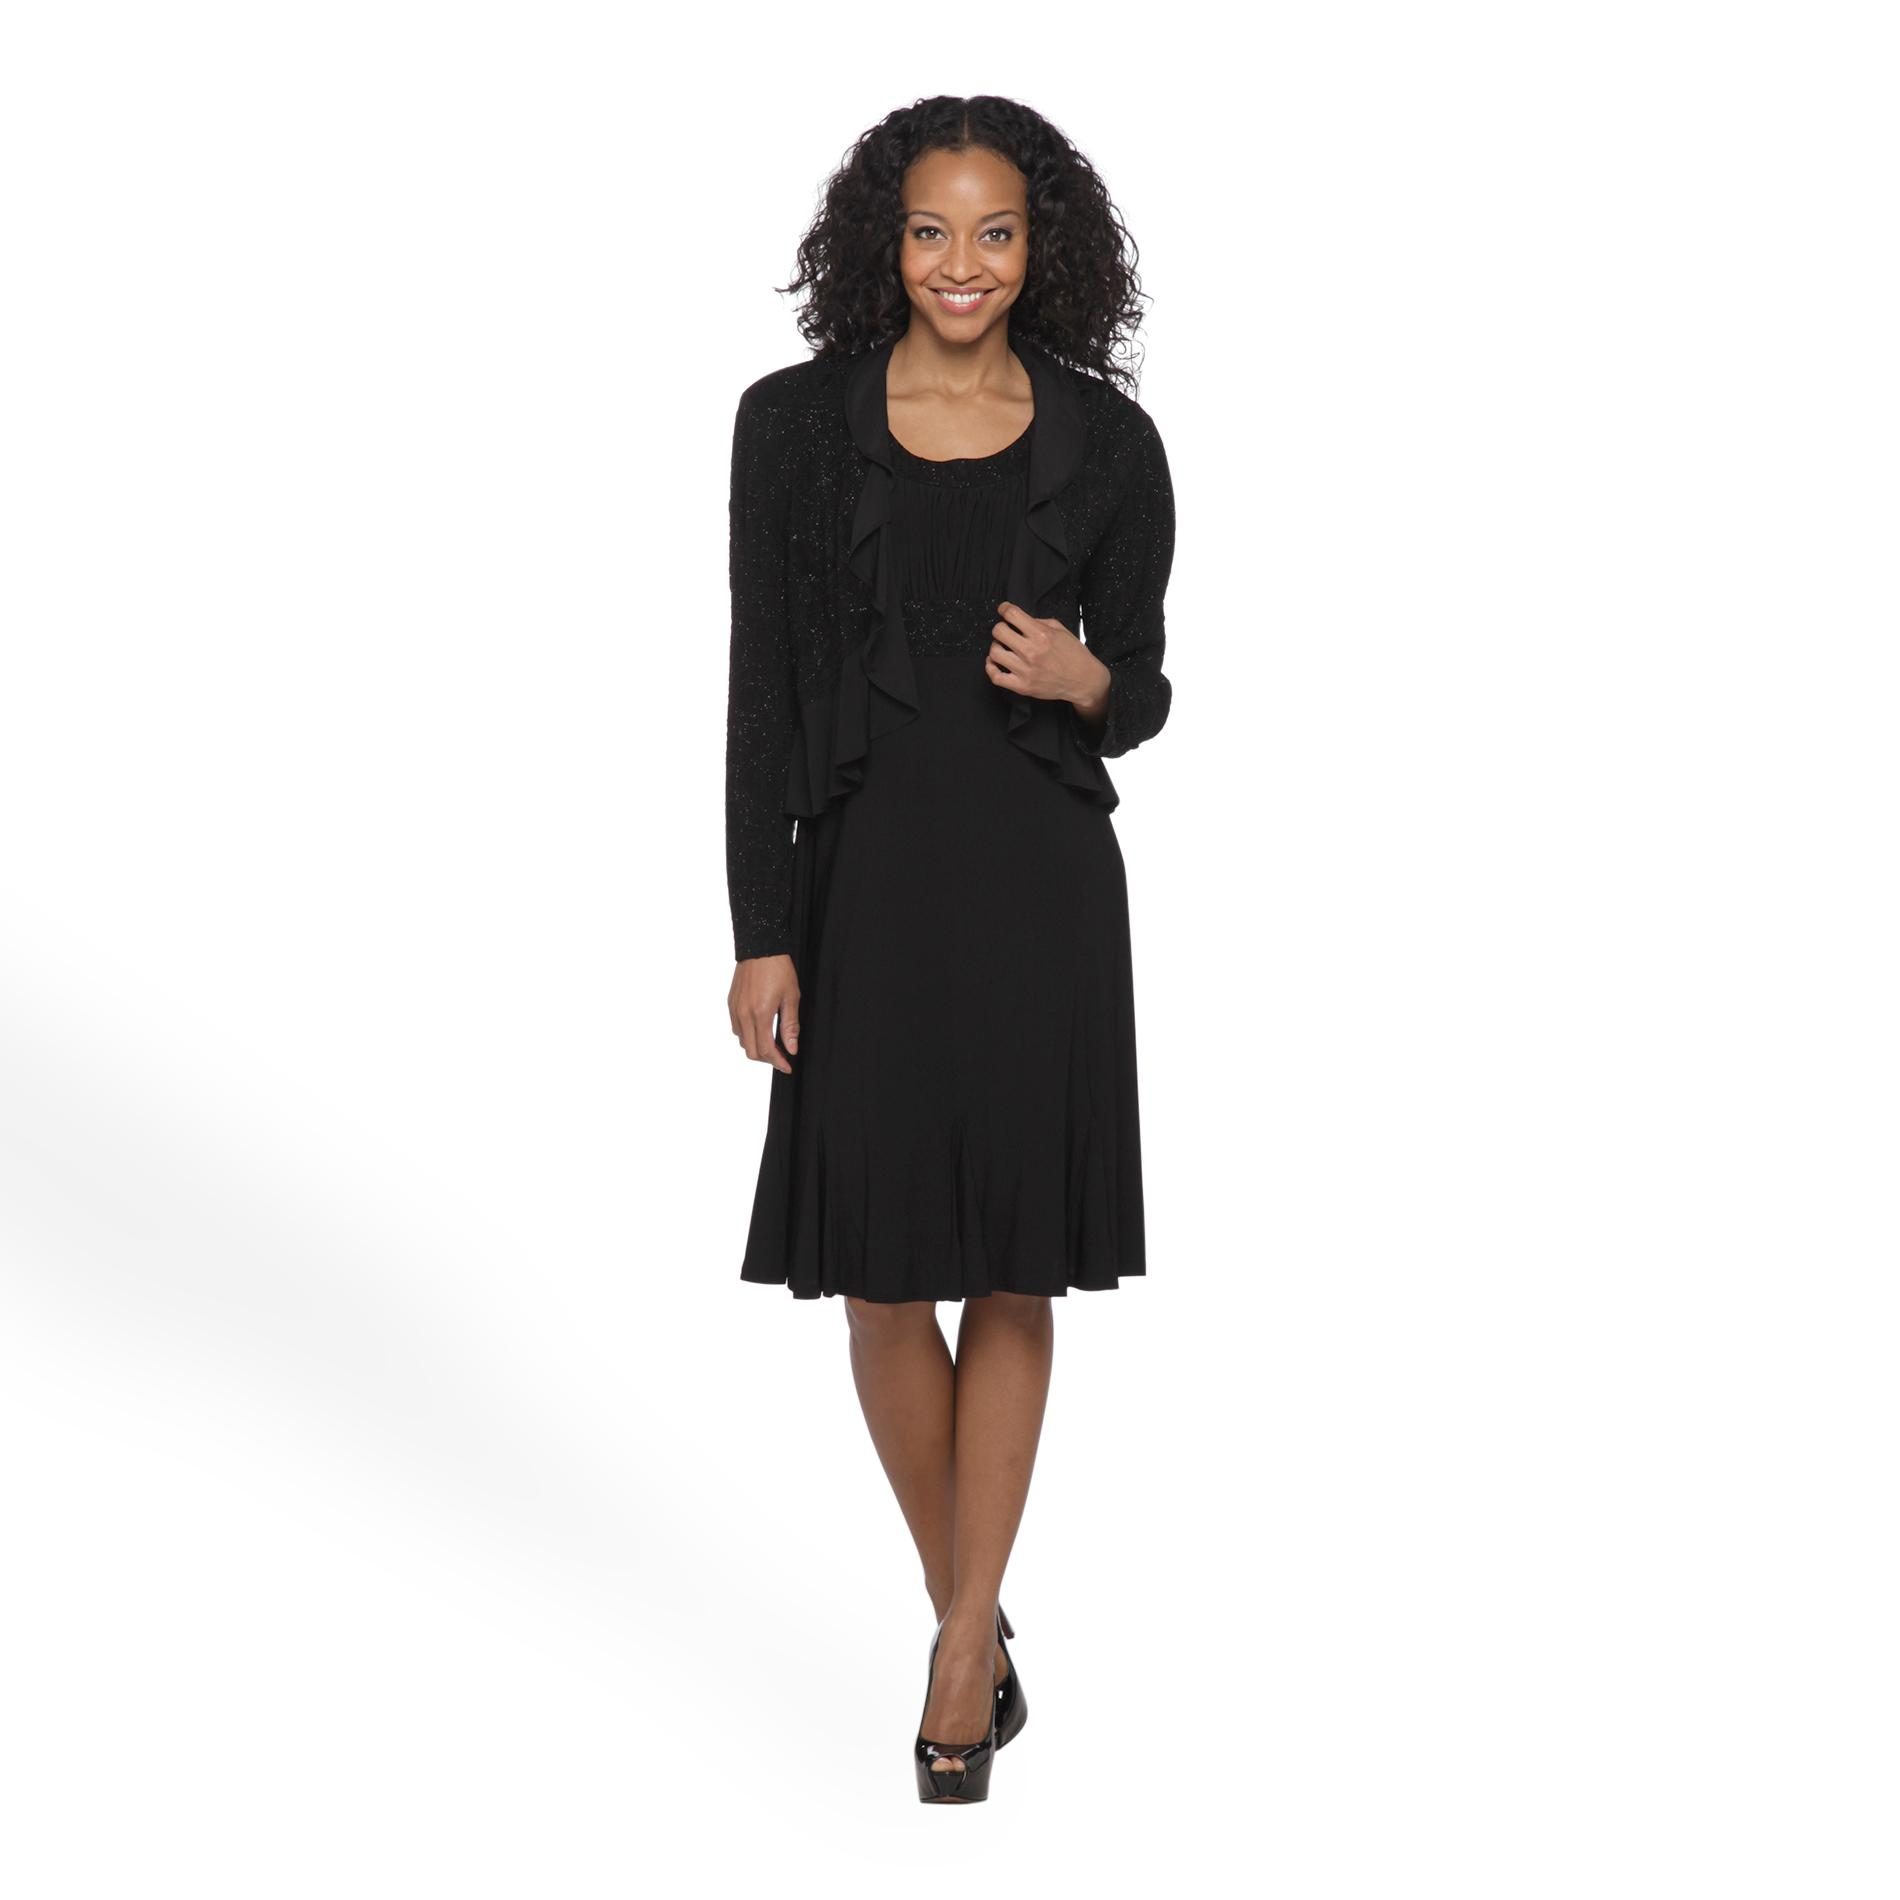 Kathy Roberts Women's Jacket & Dress - Glitter at Sears.com